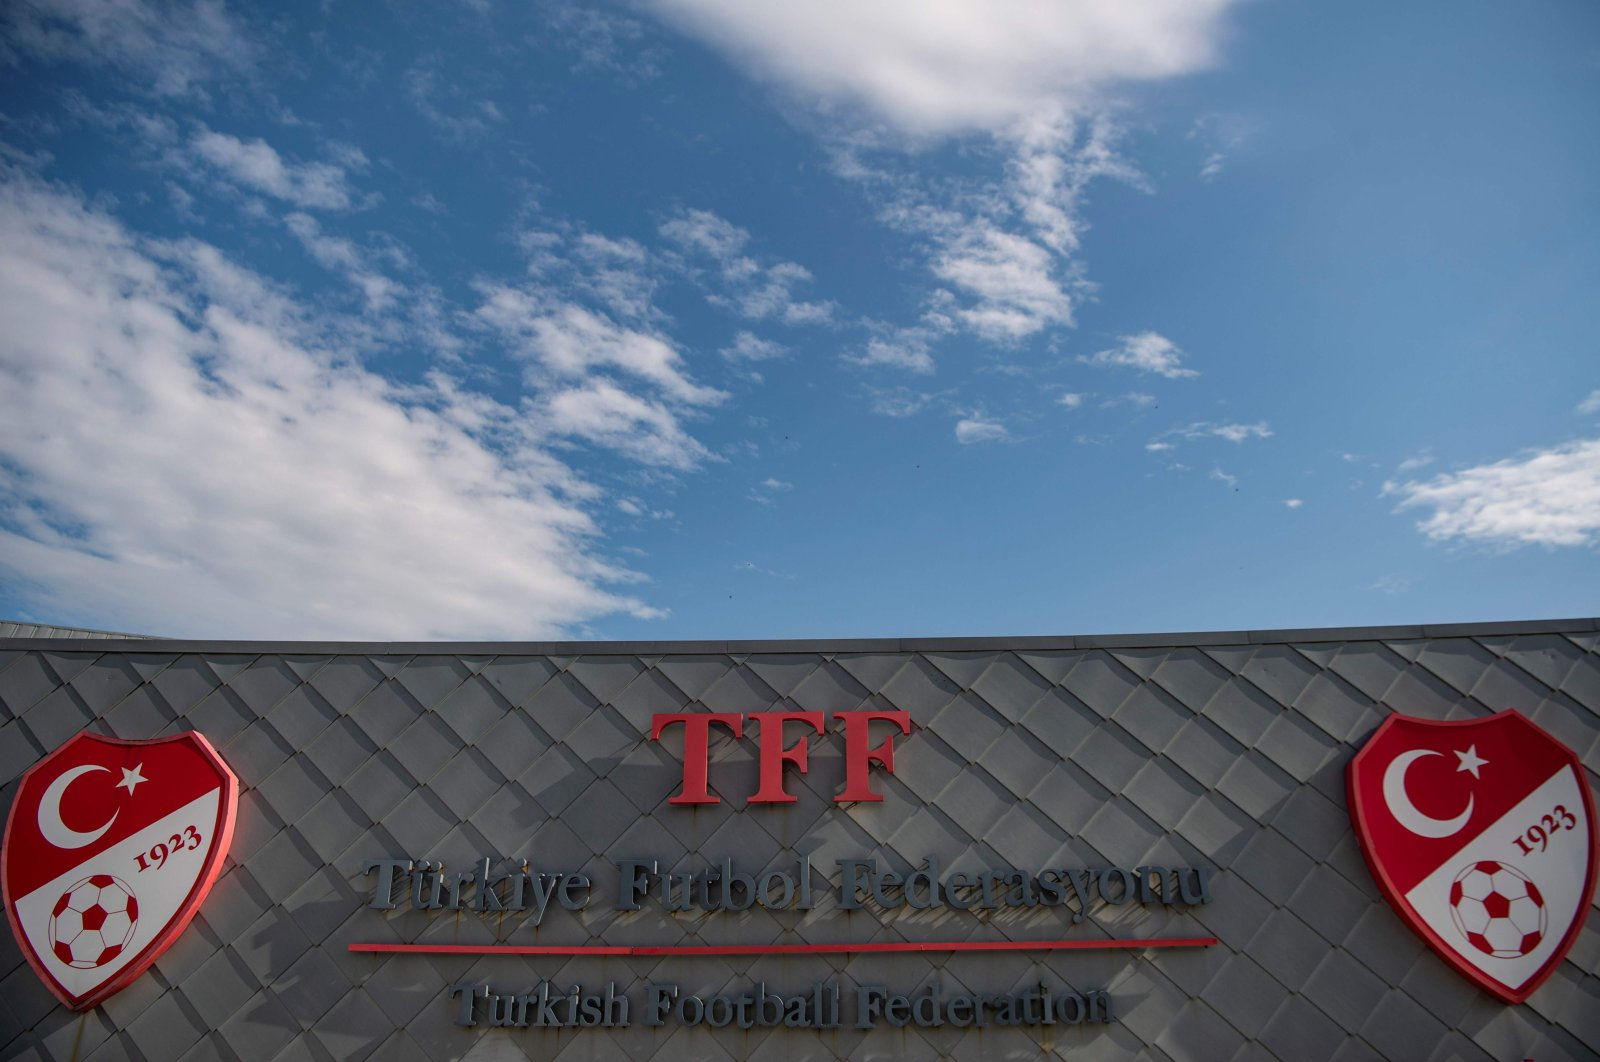 The logo of Turkish Football Federation (TFF) at the entrance of the organization's headquarters in Istanbul, Turkey, May 6, 2020. (AFP Photo)